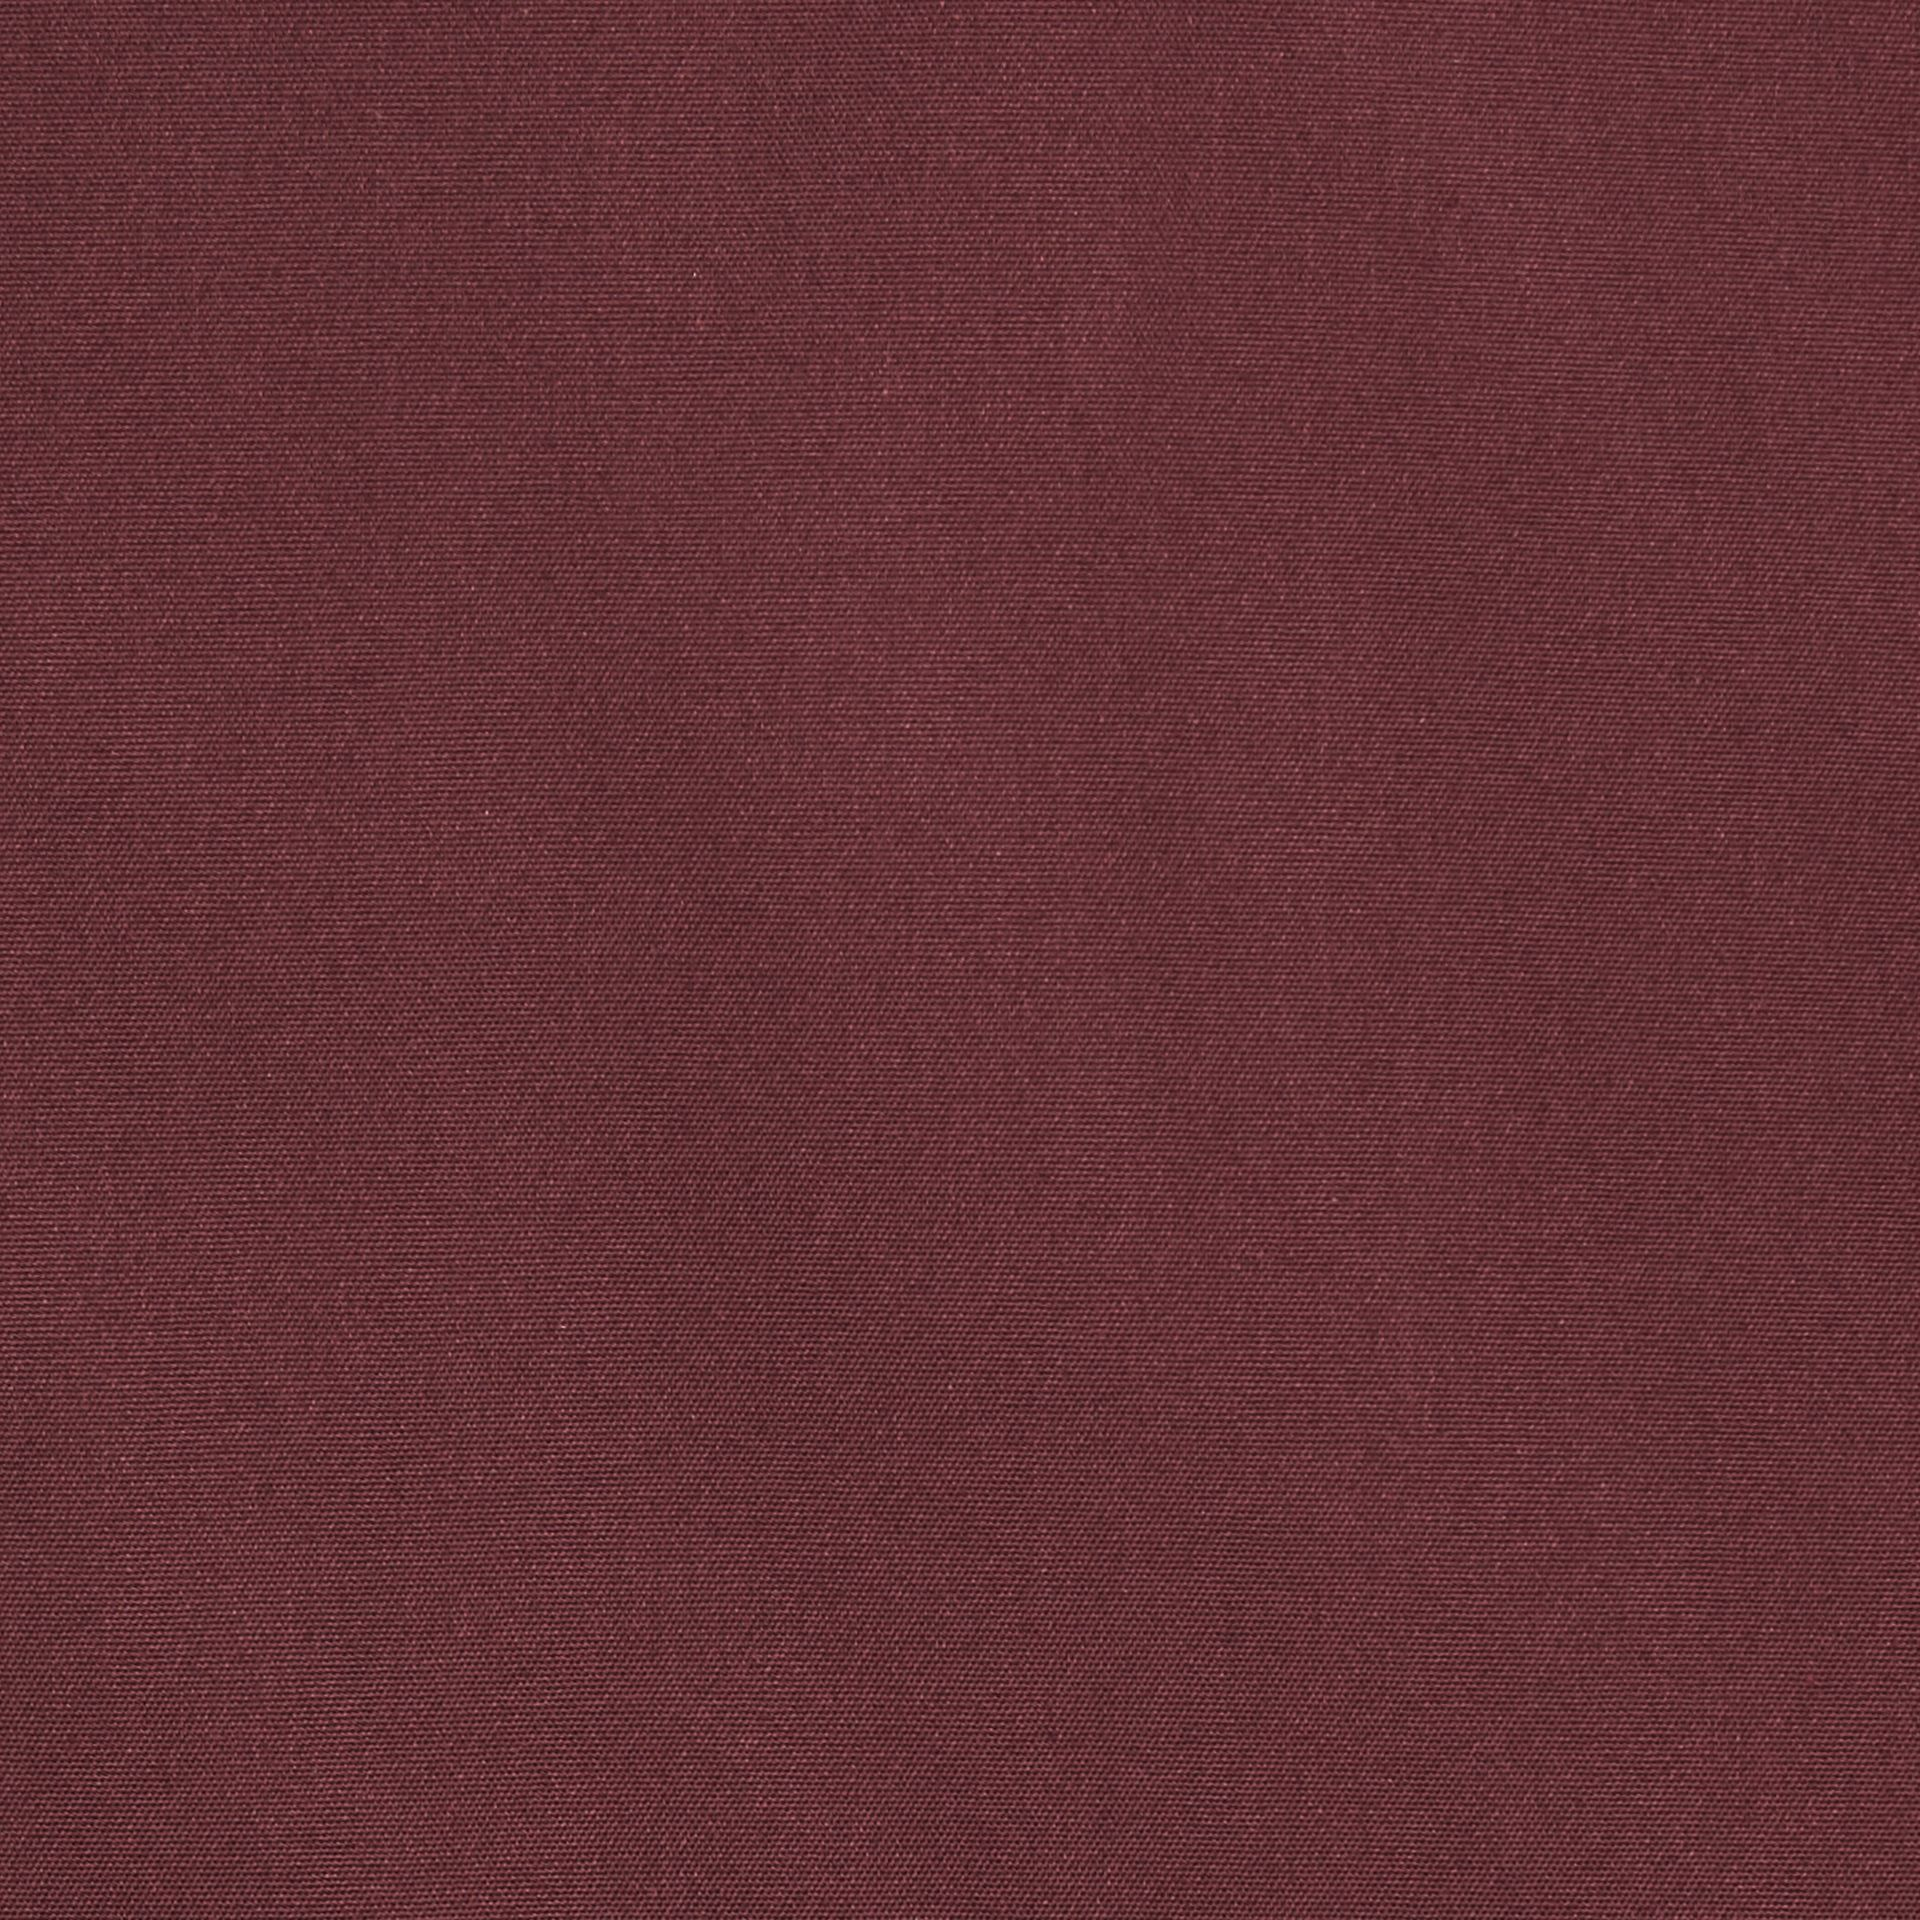 Mahogany red Slim Fit Stretch Cotton Shirt Mahogany Red - gallery image 2